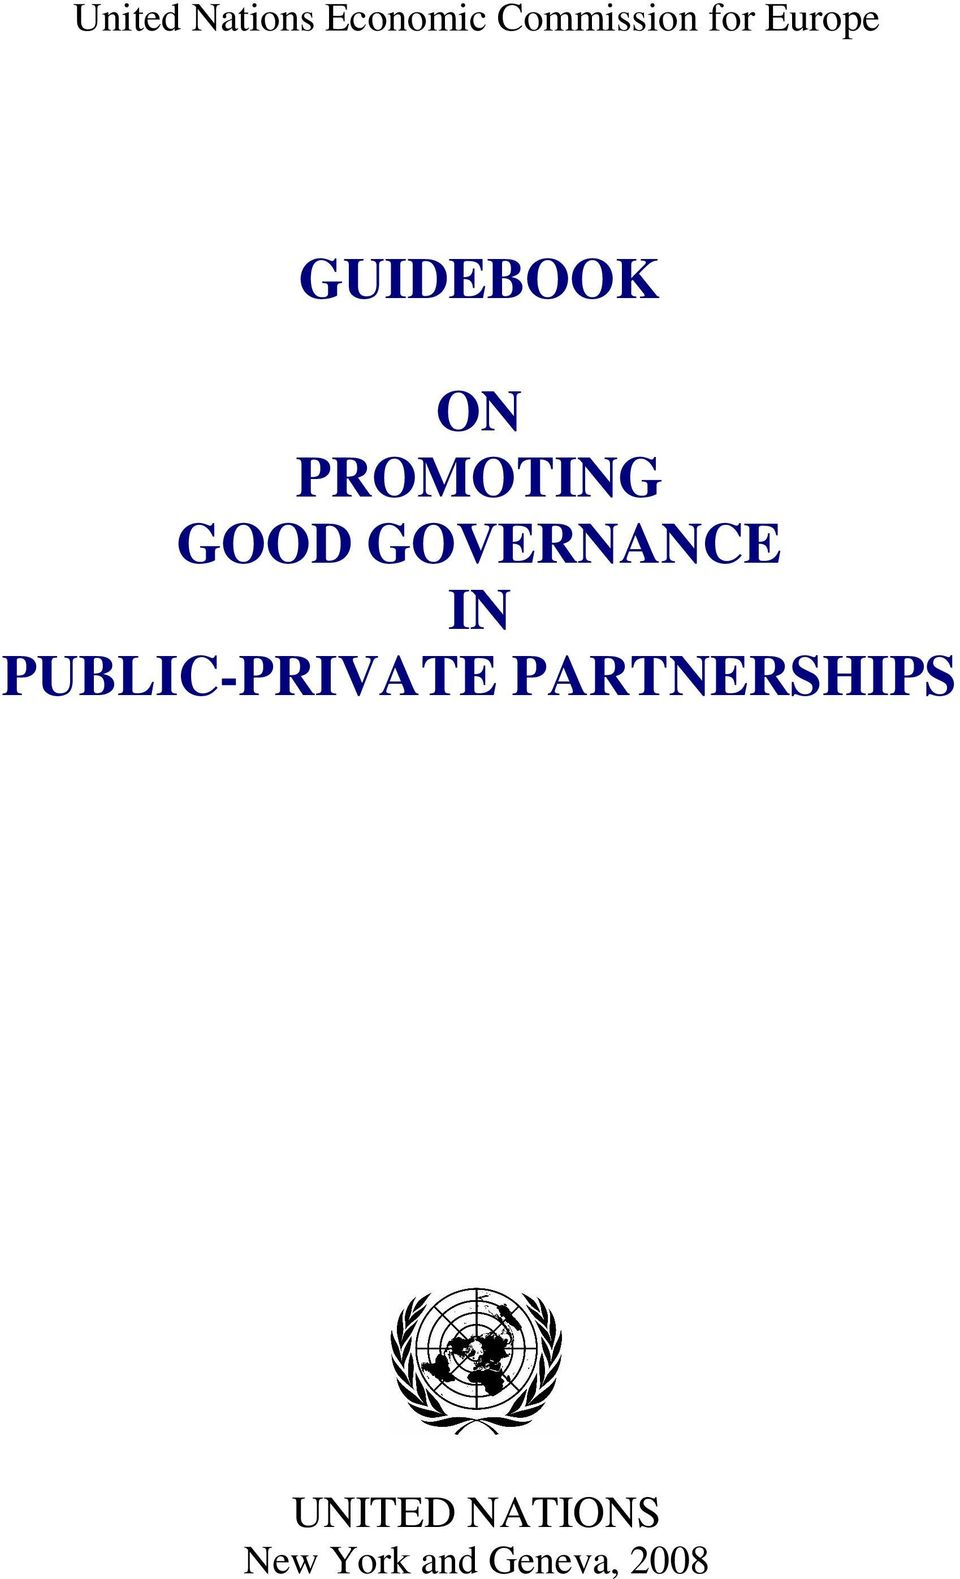 GOVERNANCE IN PUBLIC-PRIVATE